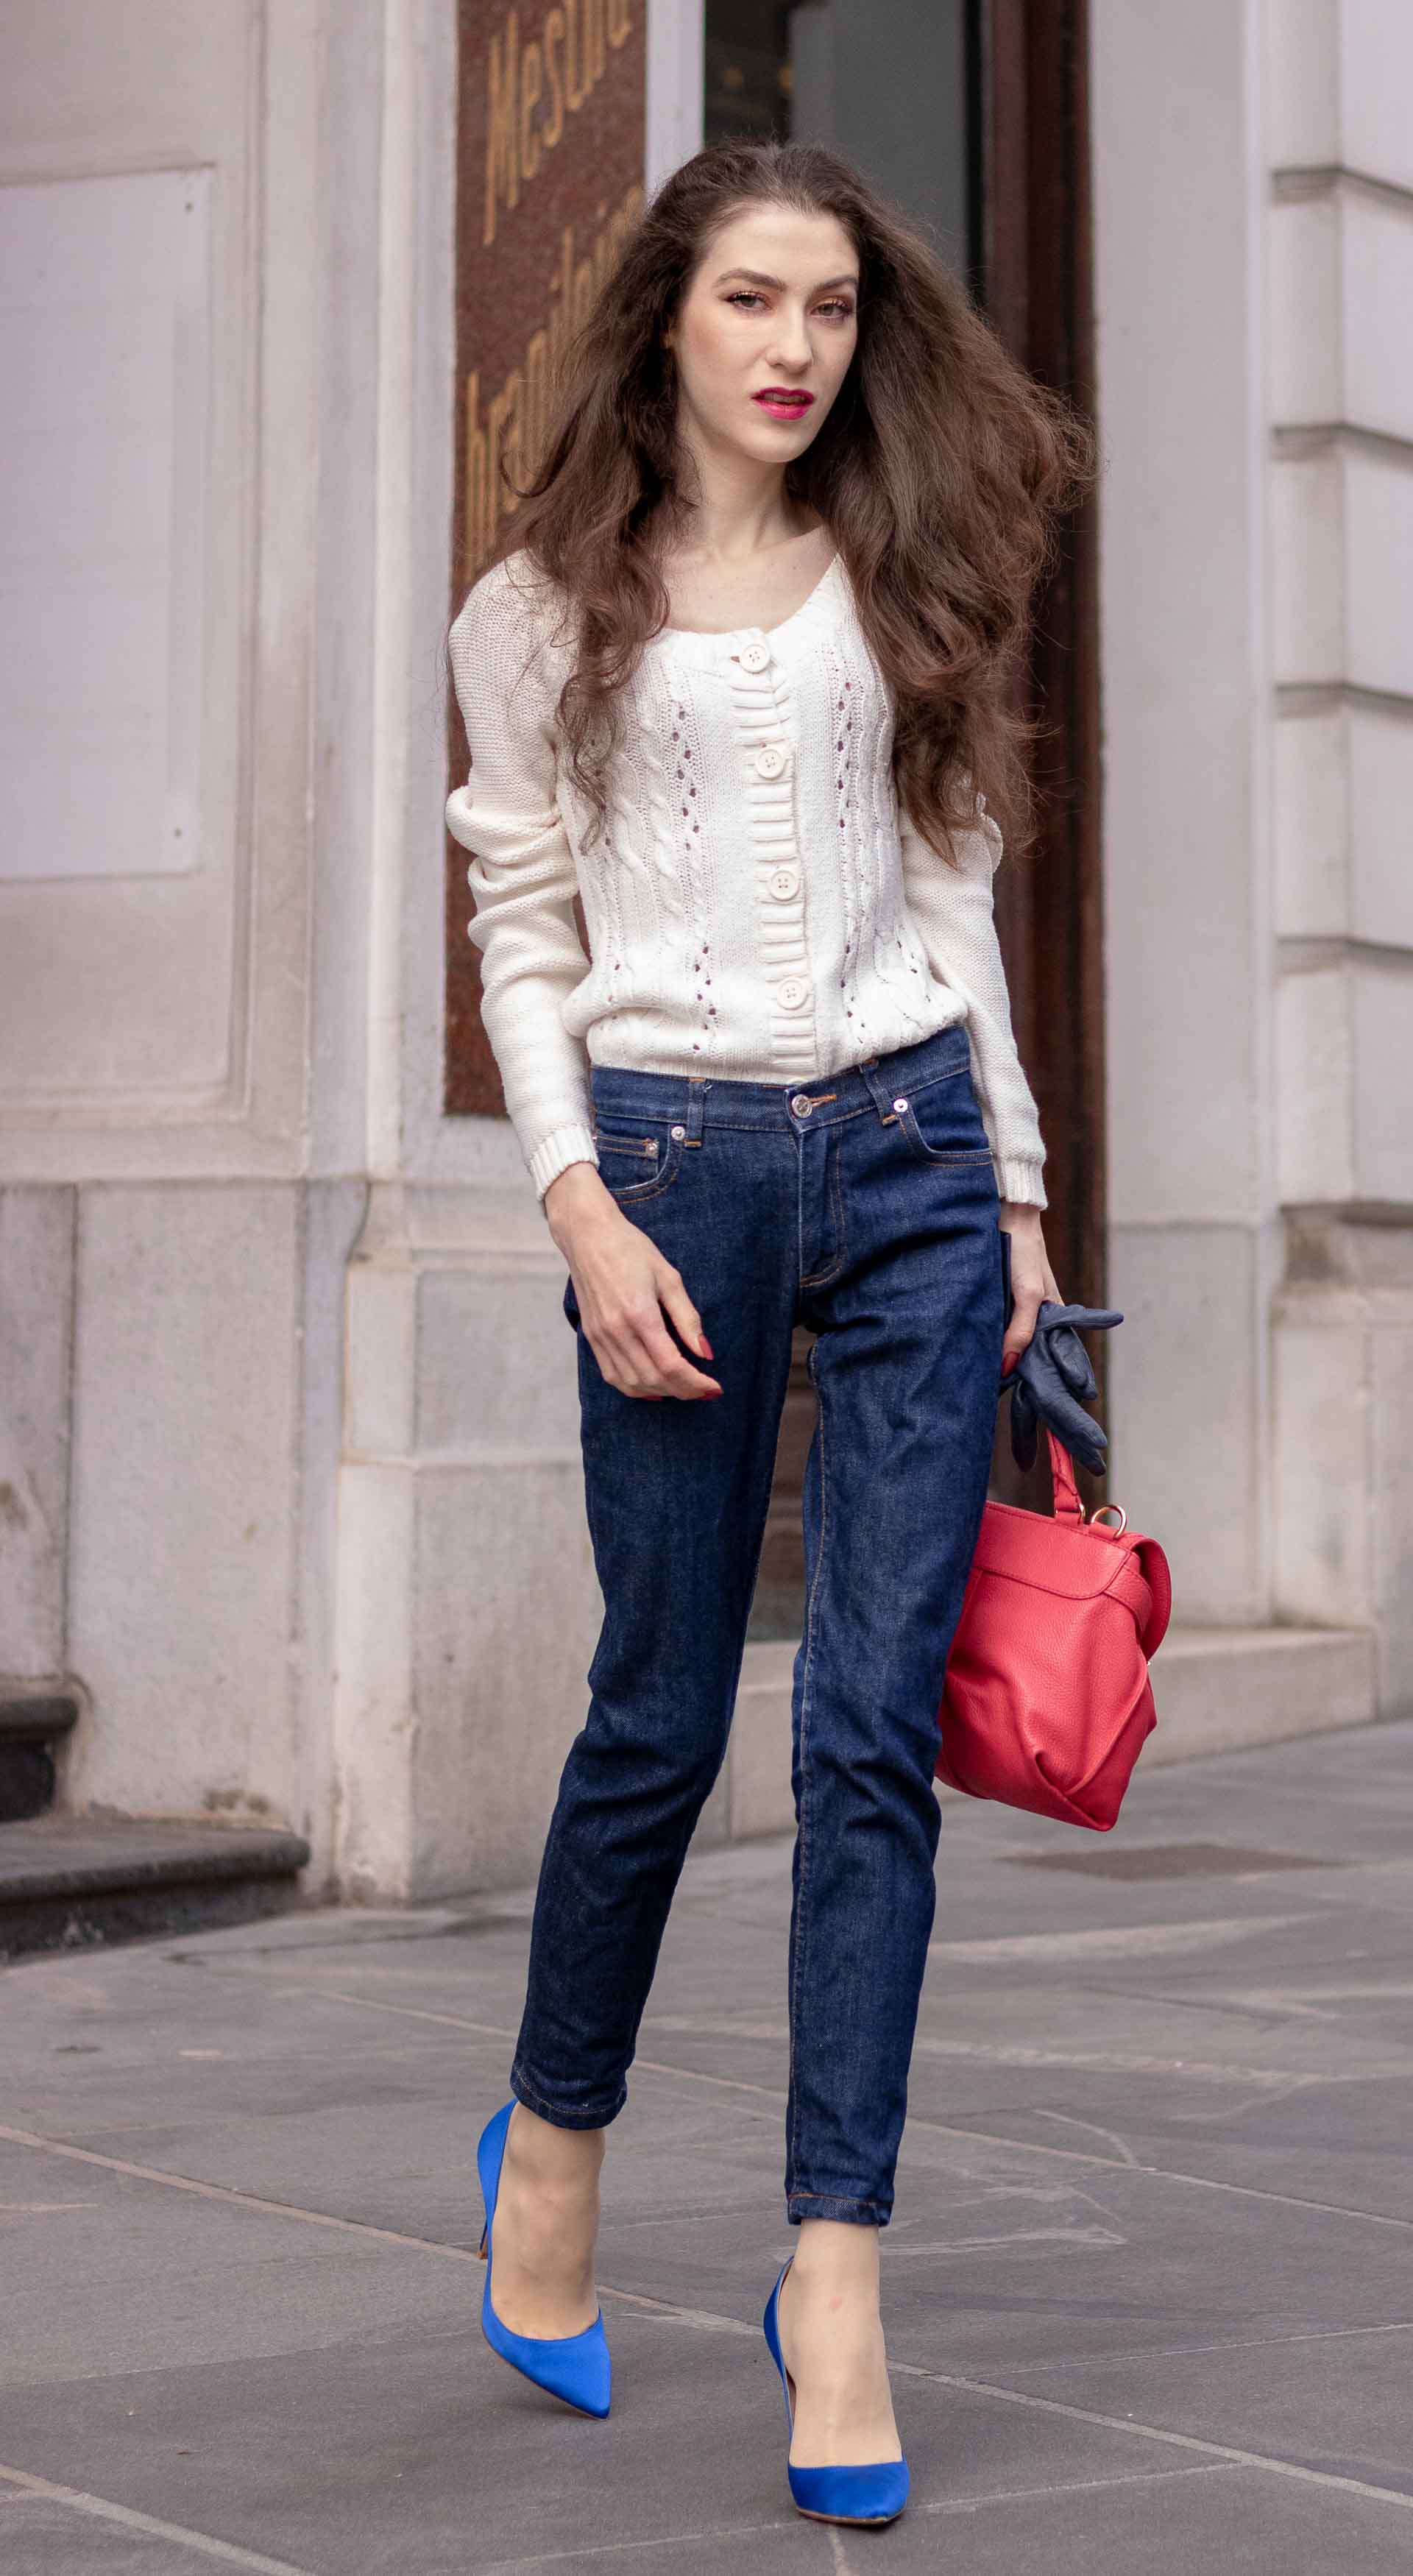 Beautiful Slovenian Fashion Blogger Veronika Lipar of Brunette from Wall wearing white Mango cardigan tucked into dark blue denim jeans from a.p.c., blue Gianvito Rossi pumps, pink top handle bag walking on the street